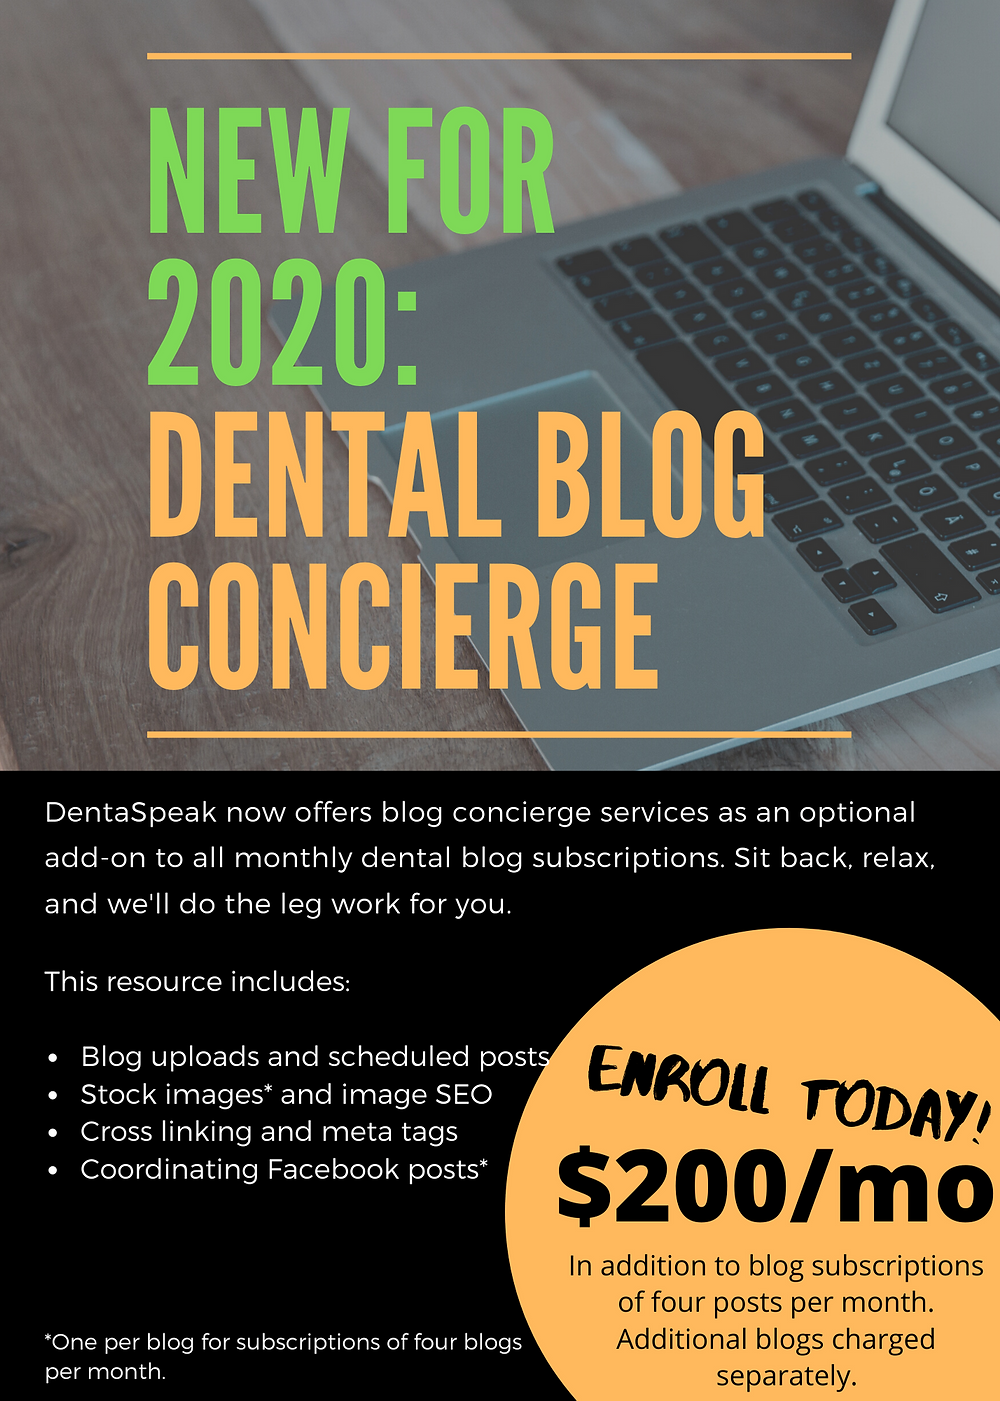 Dental concierge services for $200/mo.